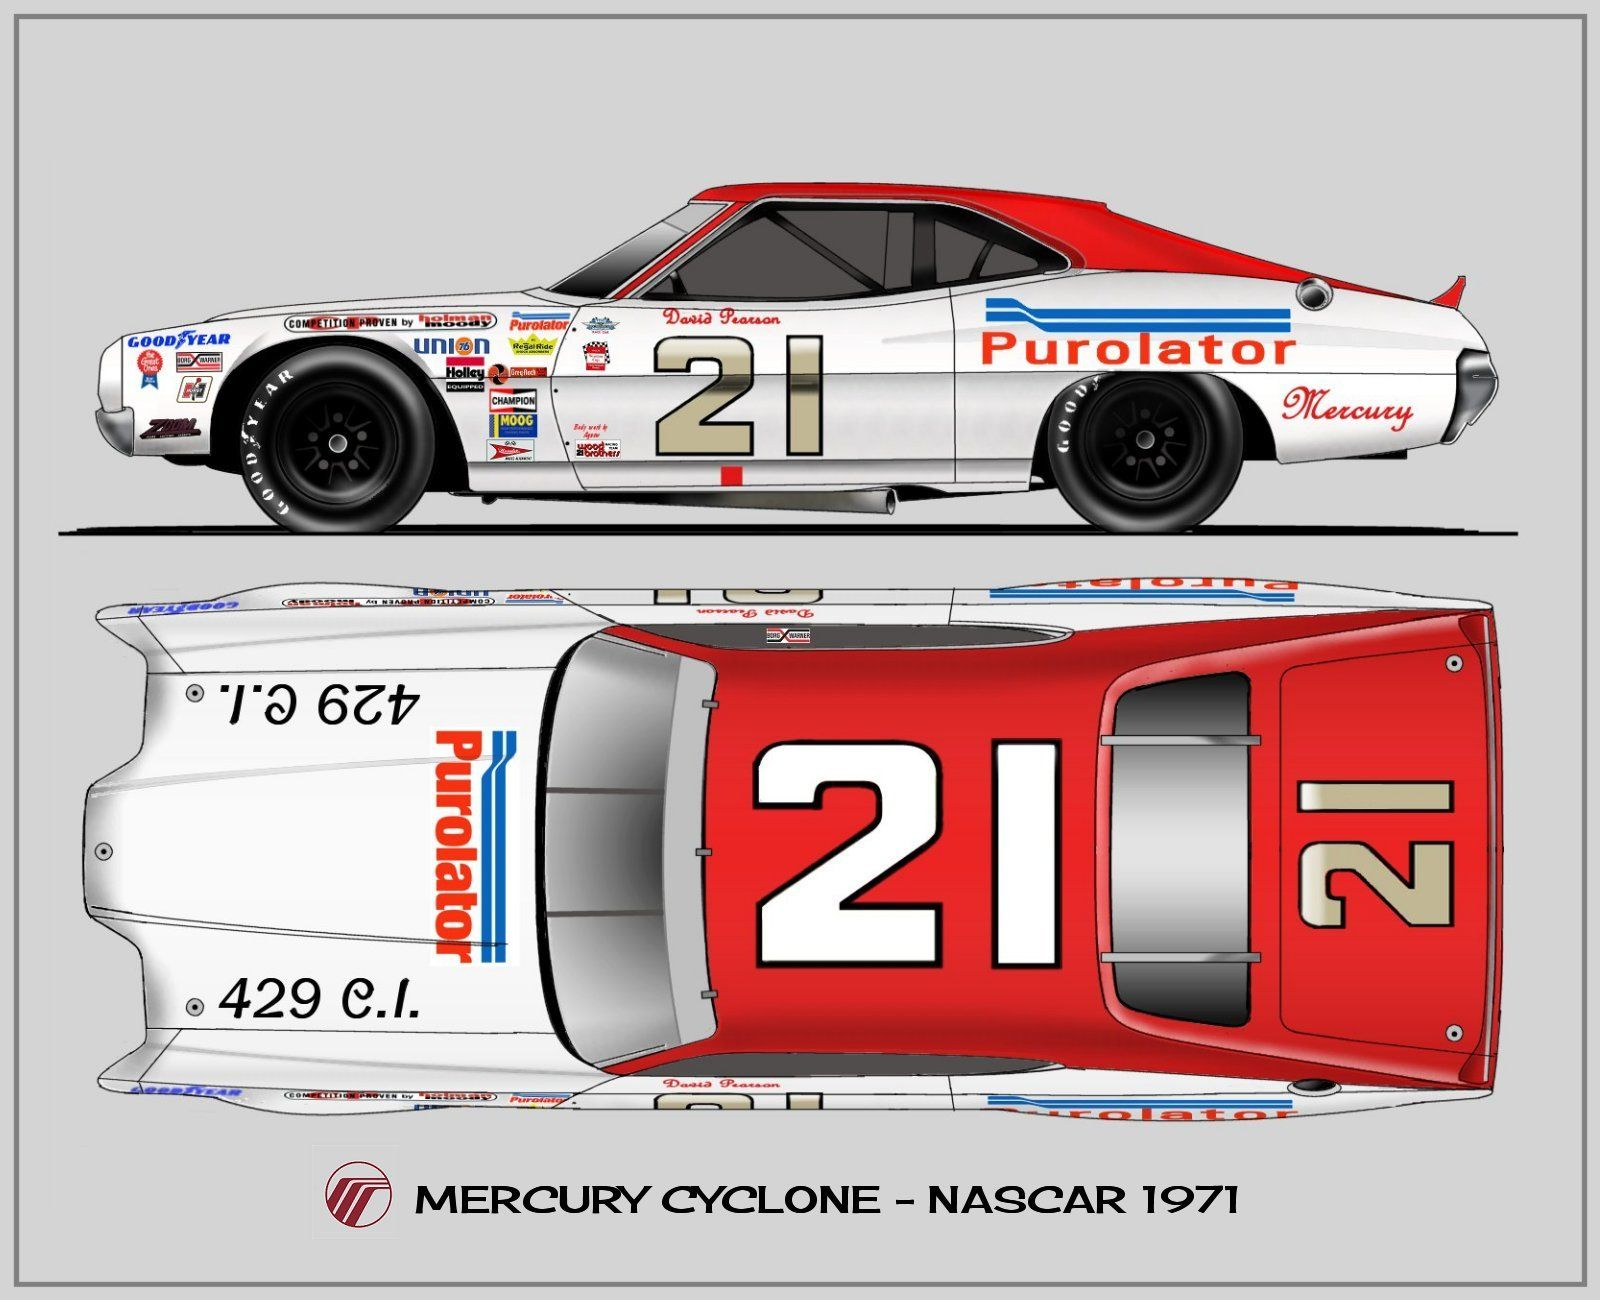 1972 mercury montego n code 429 restomod motorcycle custom - Best 25 Mercury Montego Ideas On Pinterest Mercury Cars Nascar Race Today And Mercury Marauder